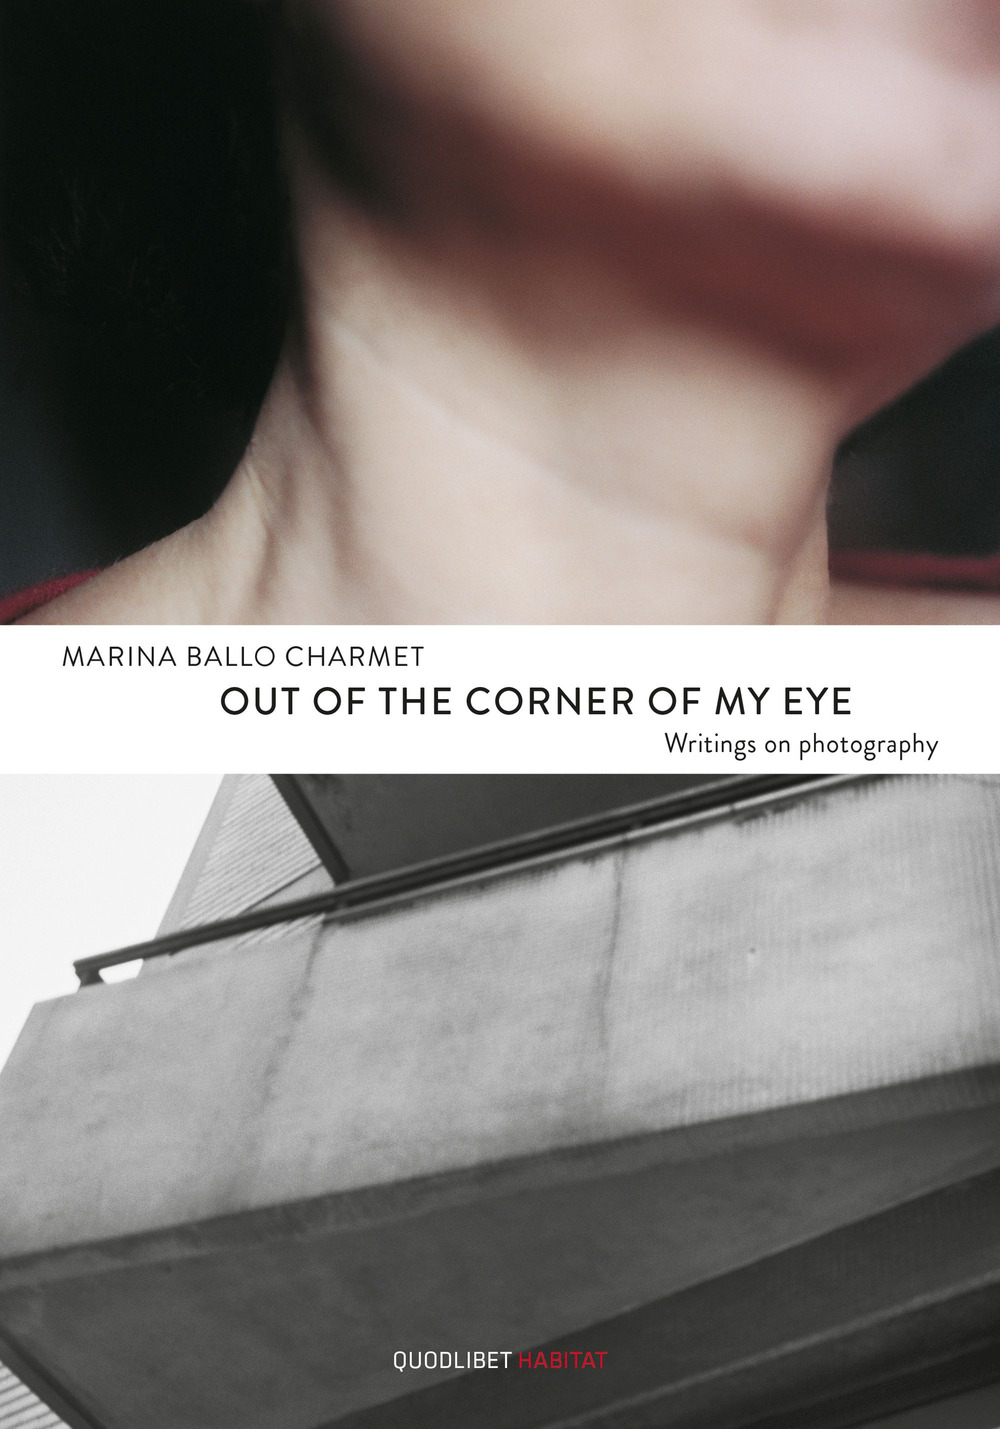 OUT OF THE CORNER OF MY EYE. WRITINGS ON PHOTOGRAPHY - 9788822902689